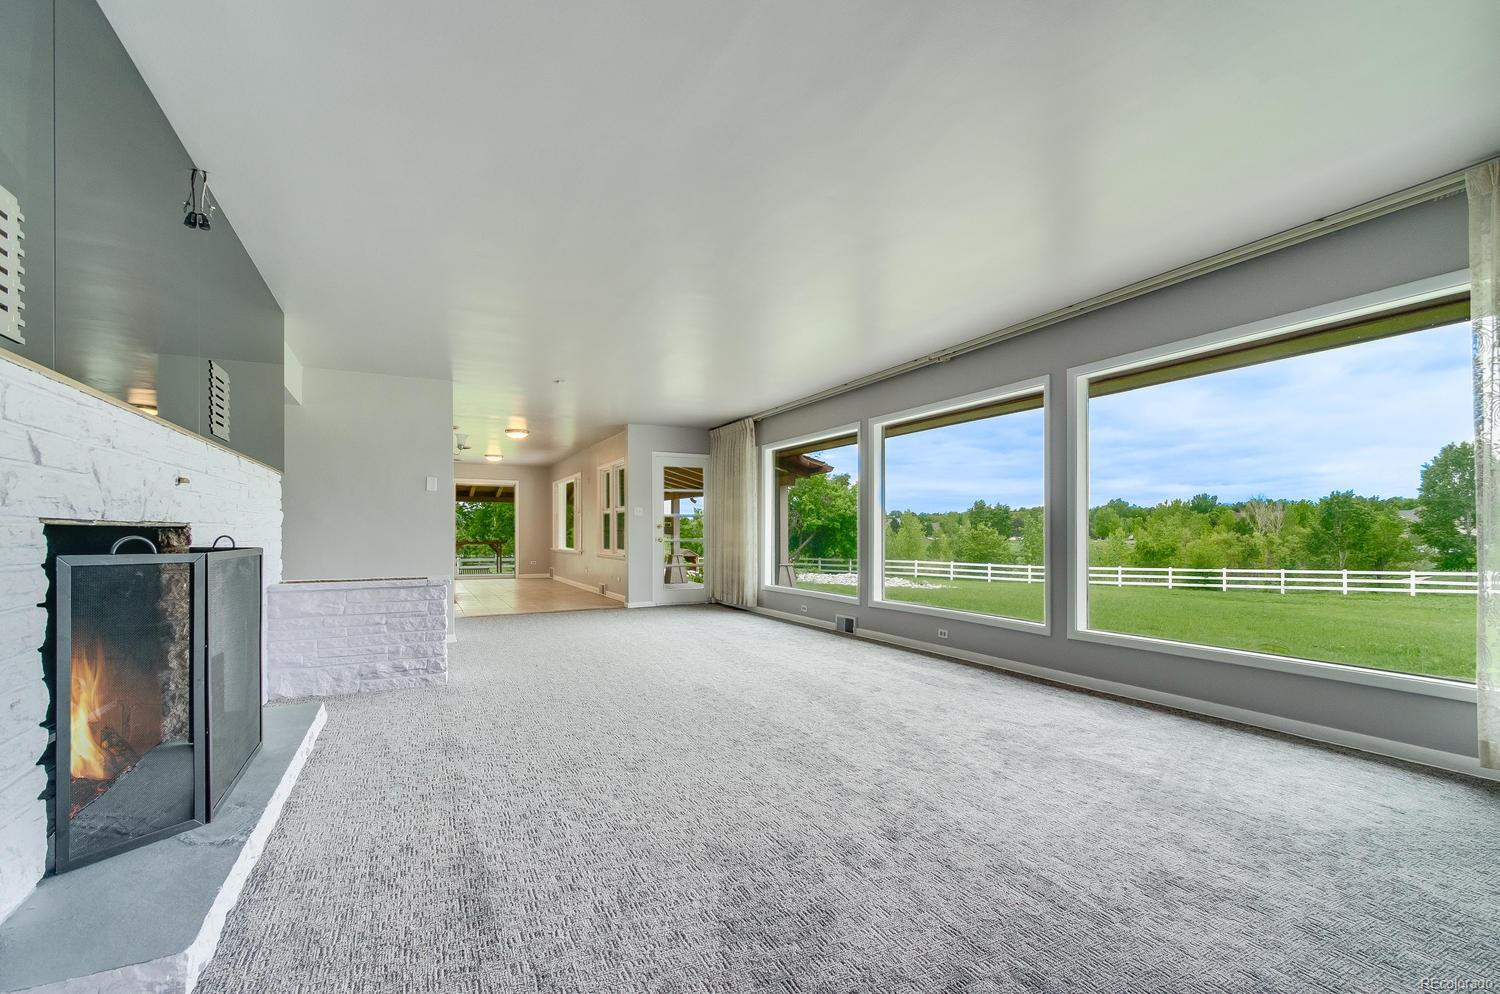 Gorgeous Views from Living Room Floor-to-Ceiling Windows